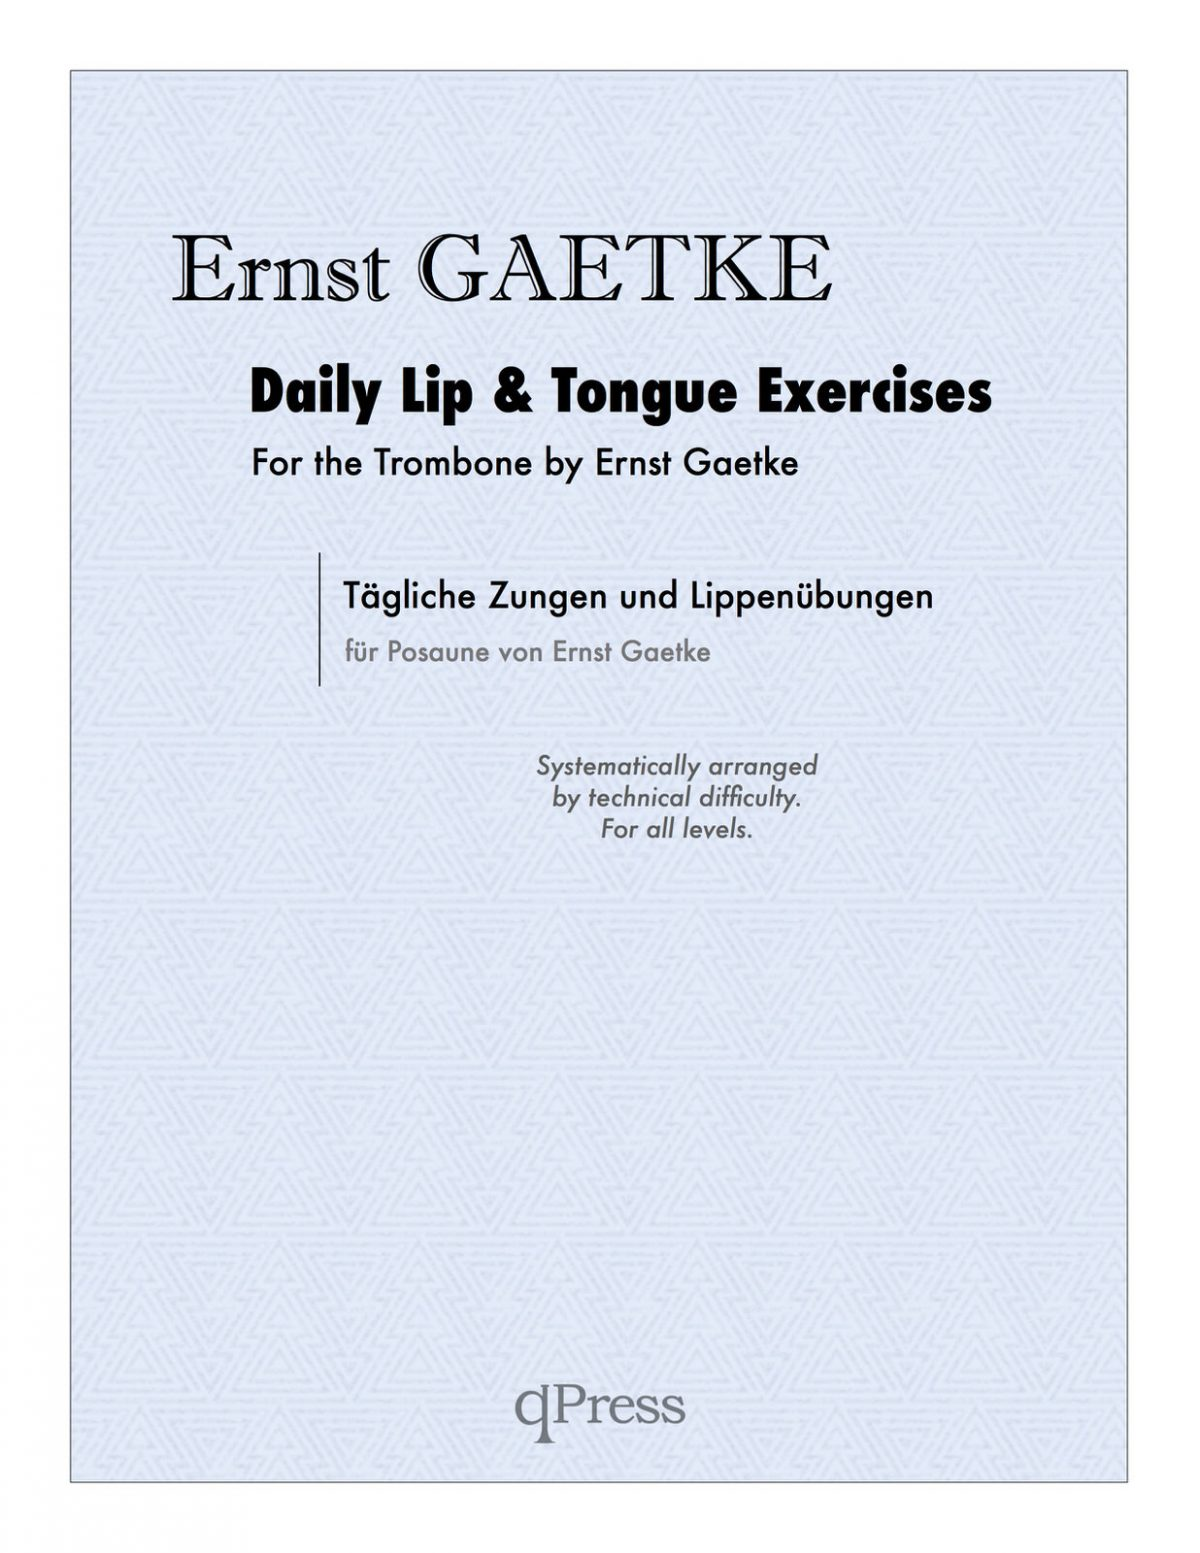 gaetke-daily-lip-and-tongue-exercises-for-trombone